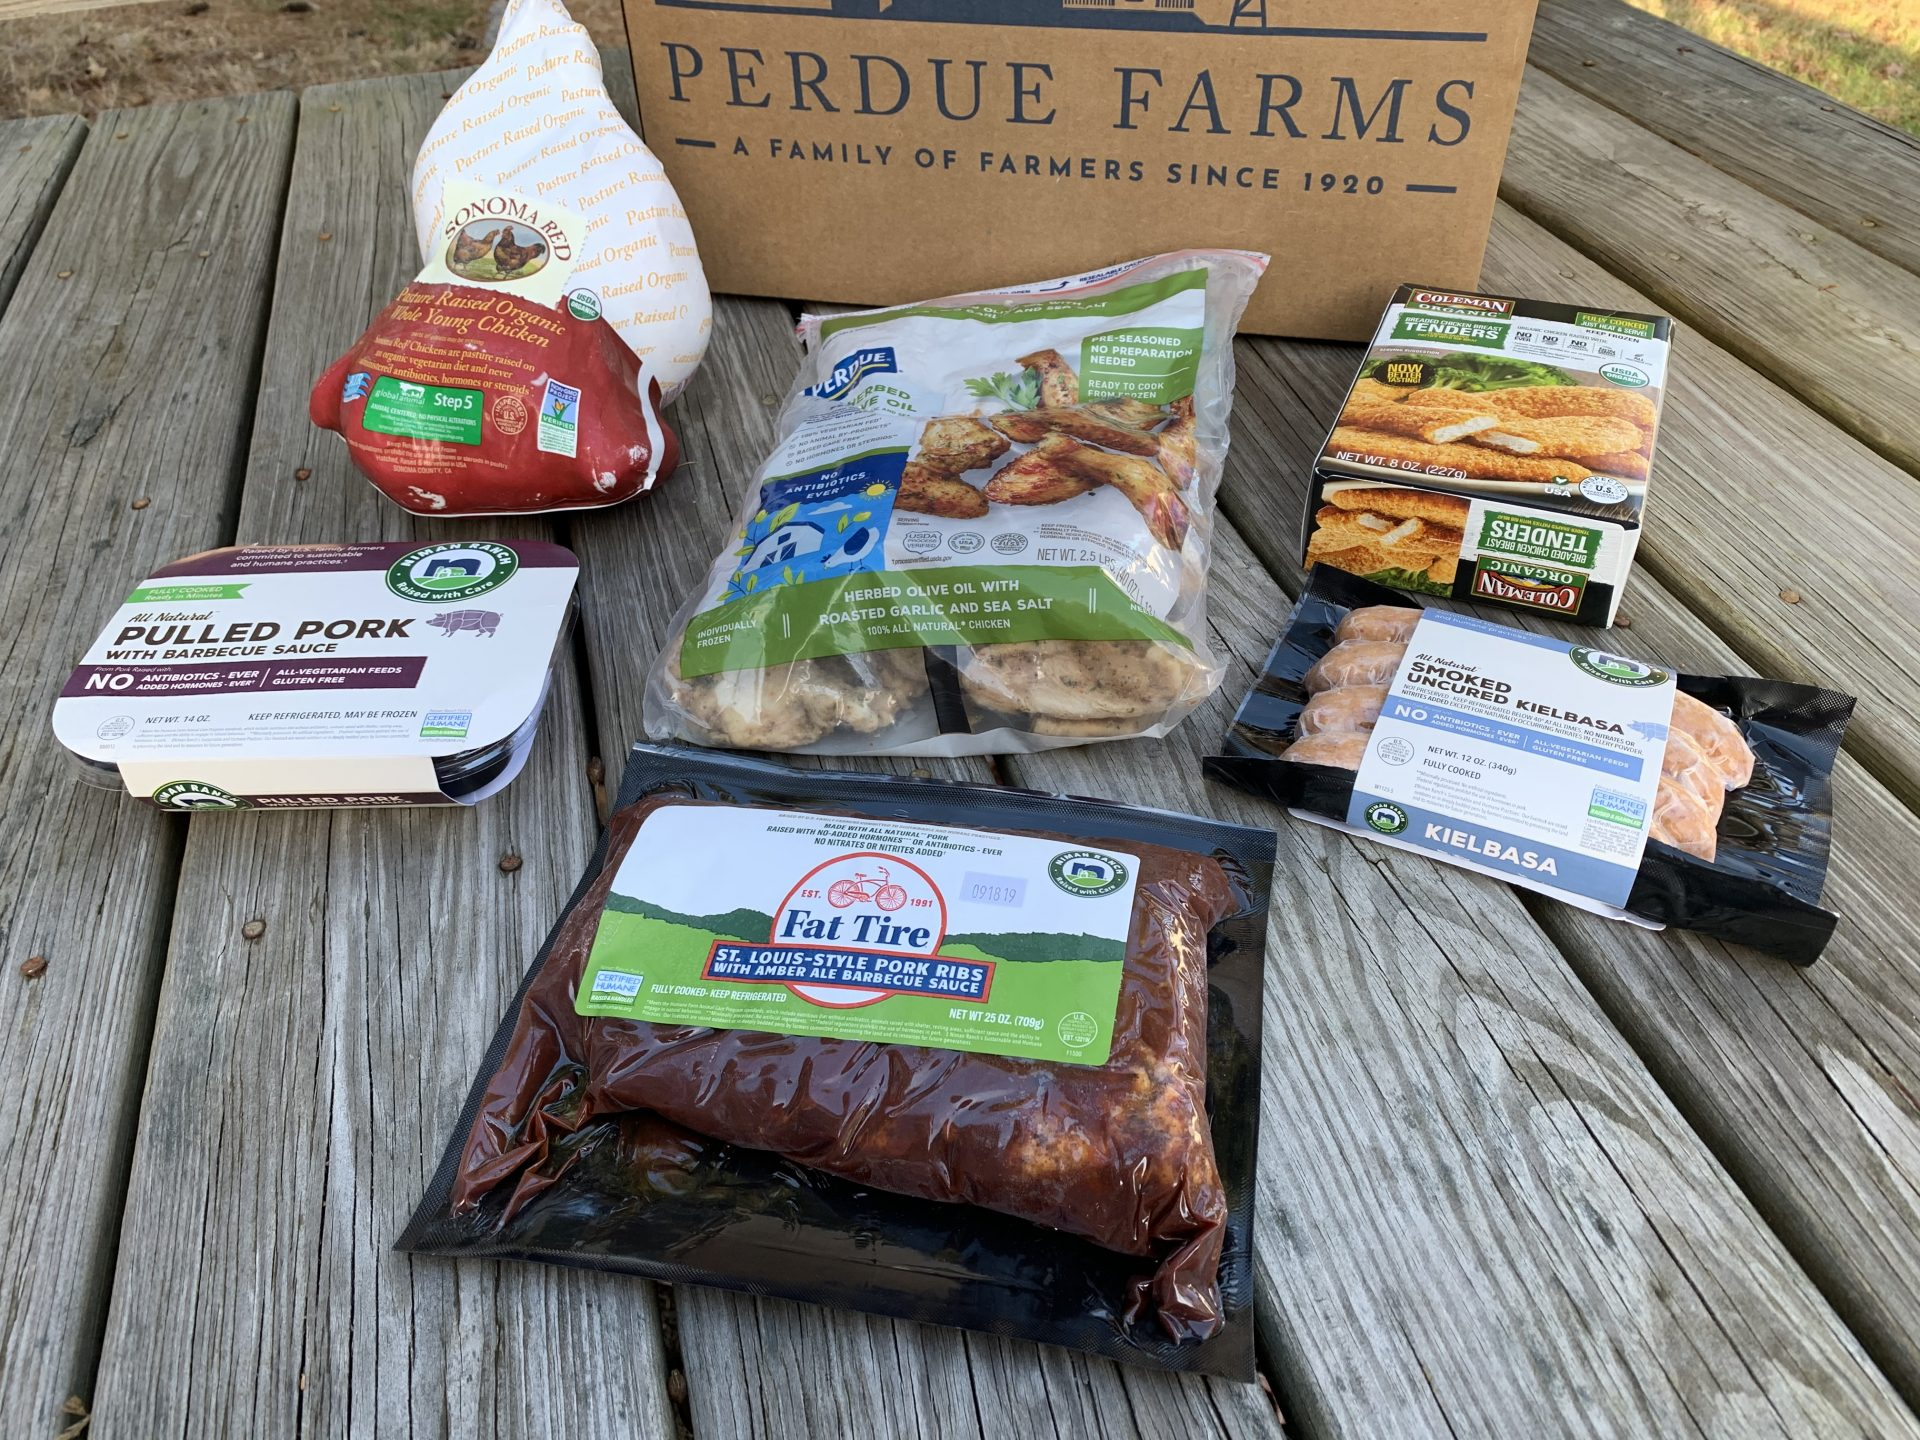 Try a pulled pork and coleslaw sandwich made from Niman Ranch pulled pork, which is one of thee things included in the Gatherings box from Perdue Farms.